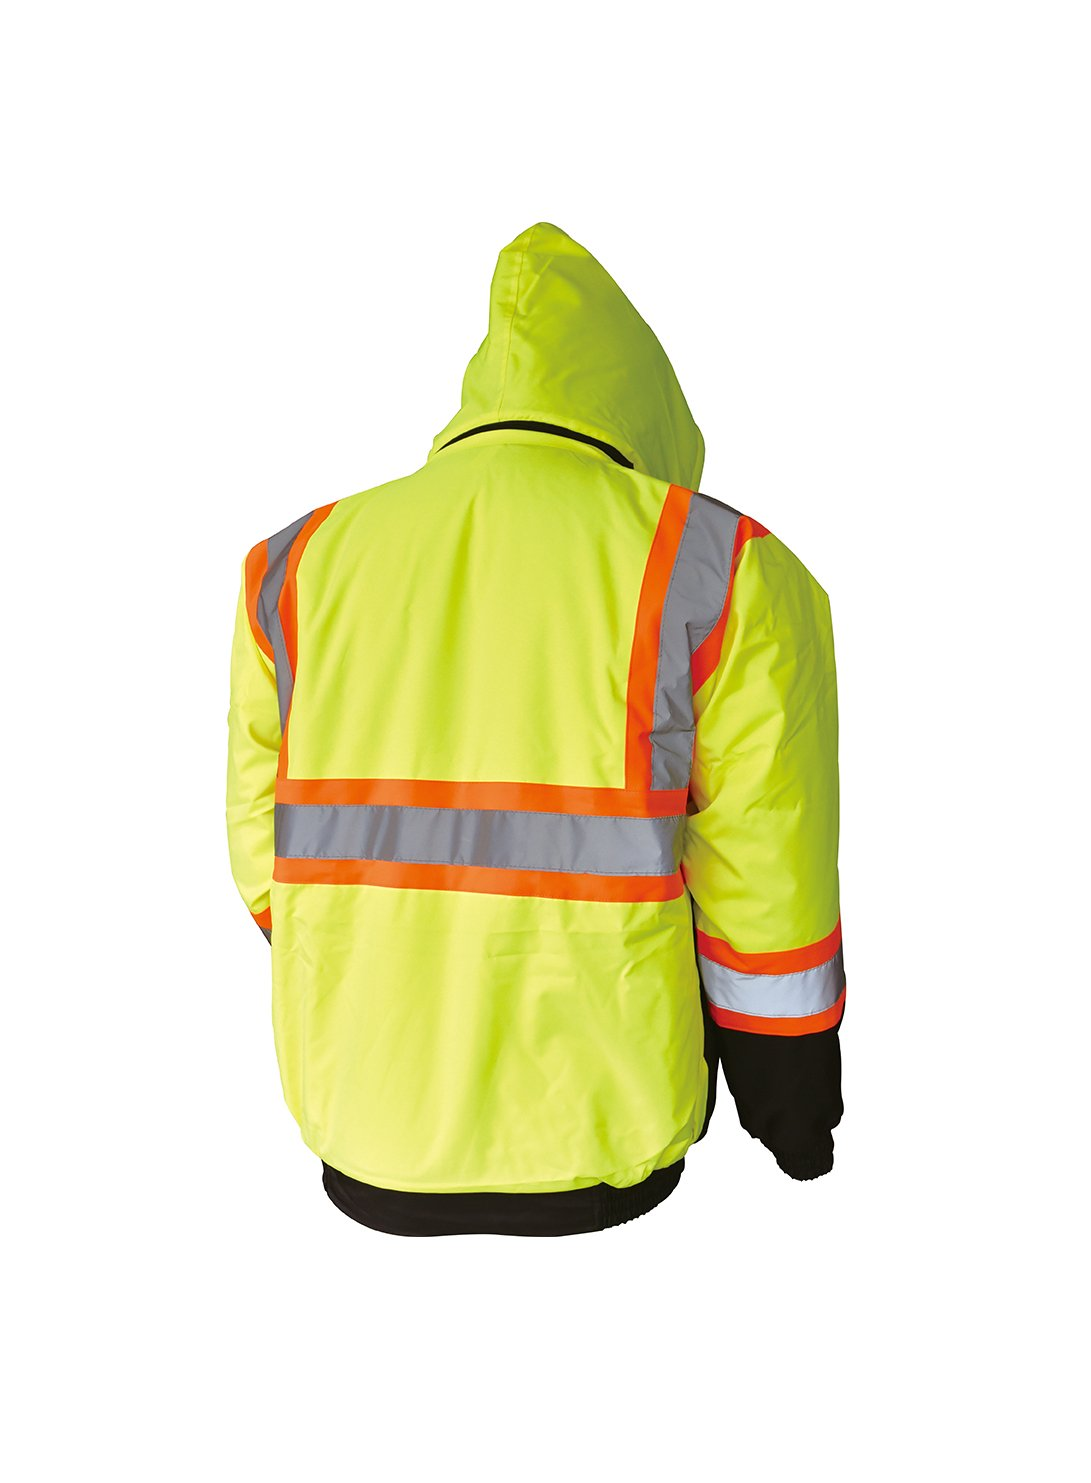 LM High Visibility Class III Reflective Waterproof Bomber Jacket W/Removable Hood (2XL, HJL) by L&M (Image #2)